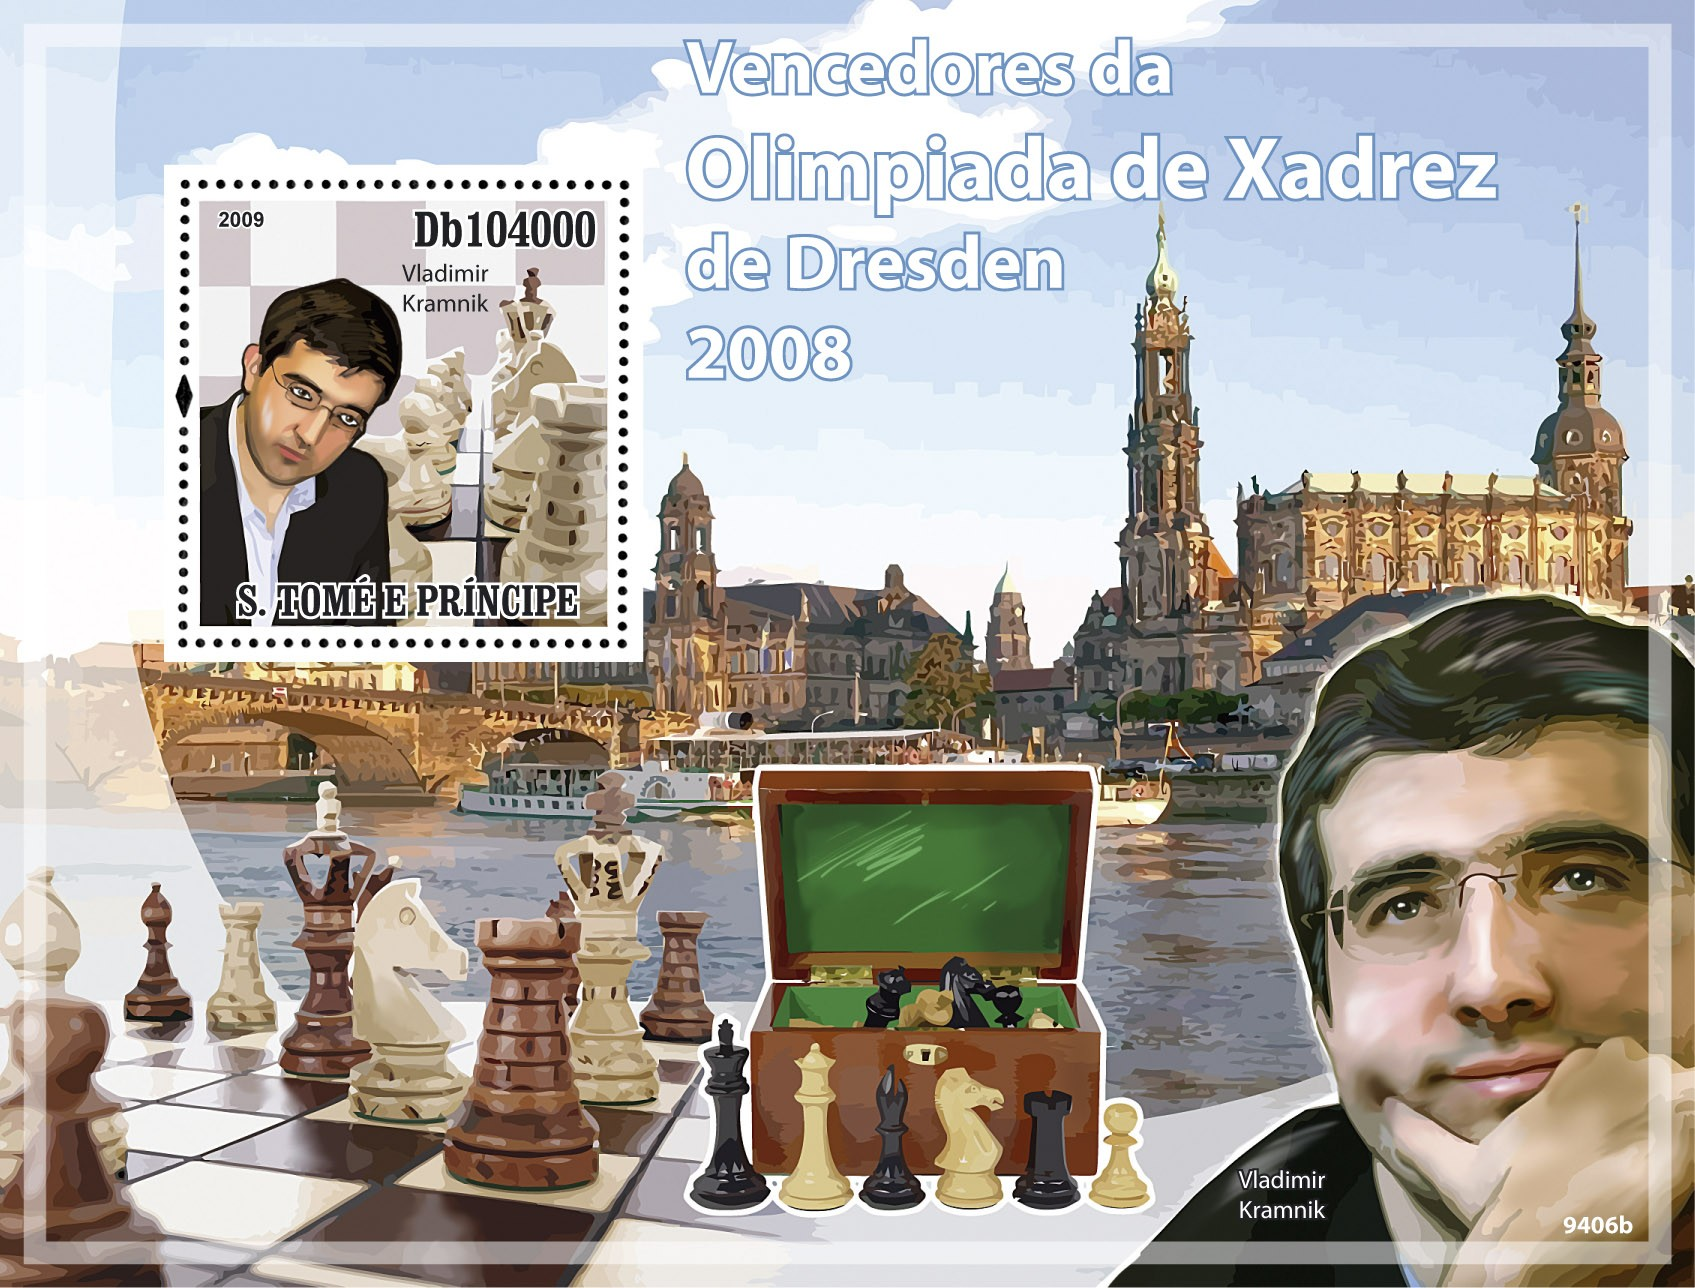 Winners of Dresden Chess Olympiad 2008 -Vladimir Kramnik - Issue of Sao Tome and Principe postage stamps